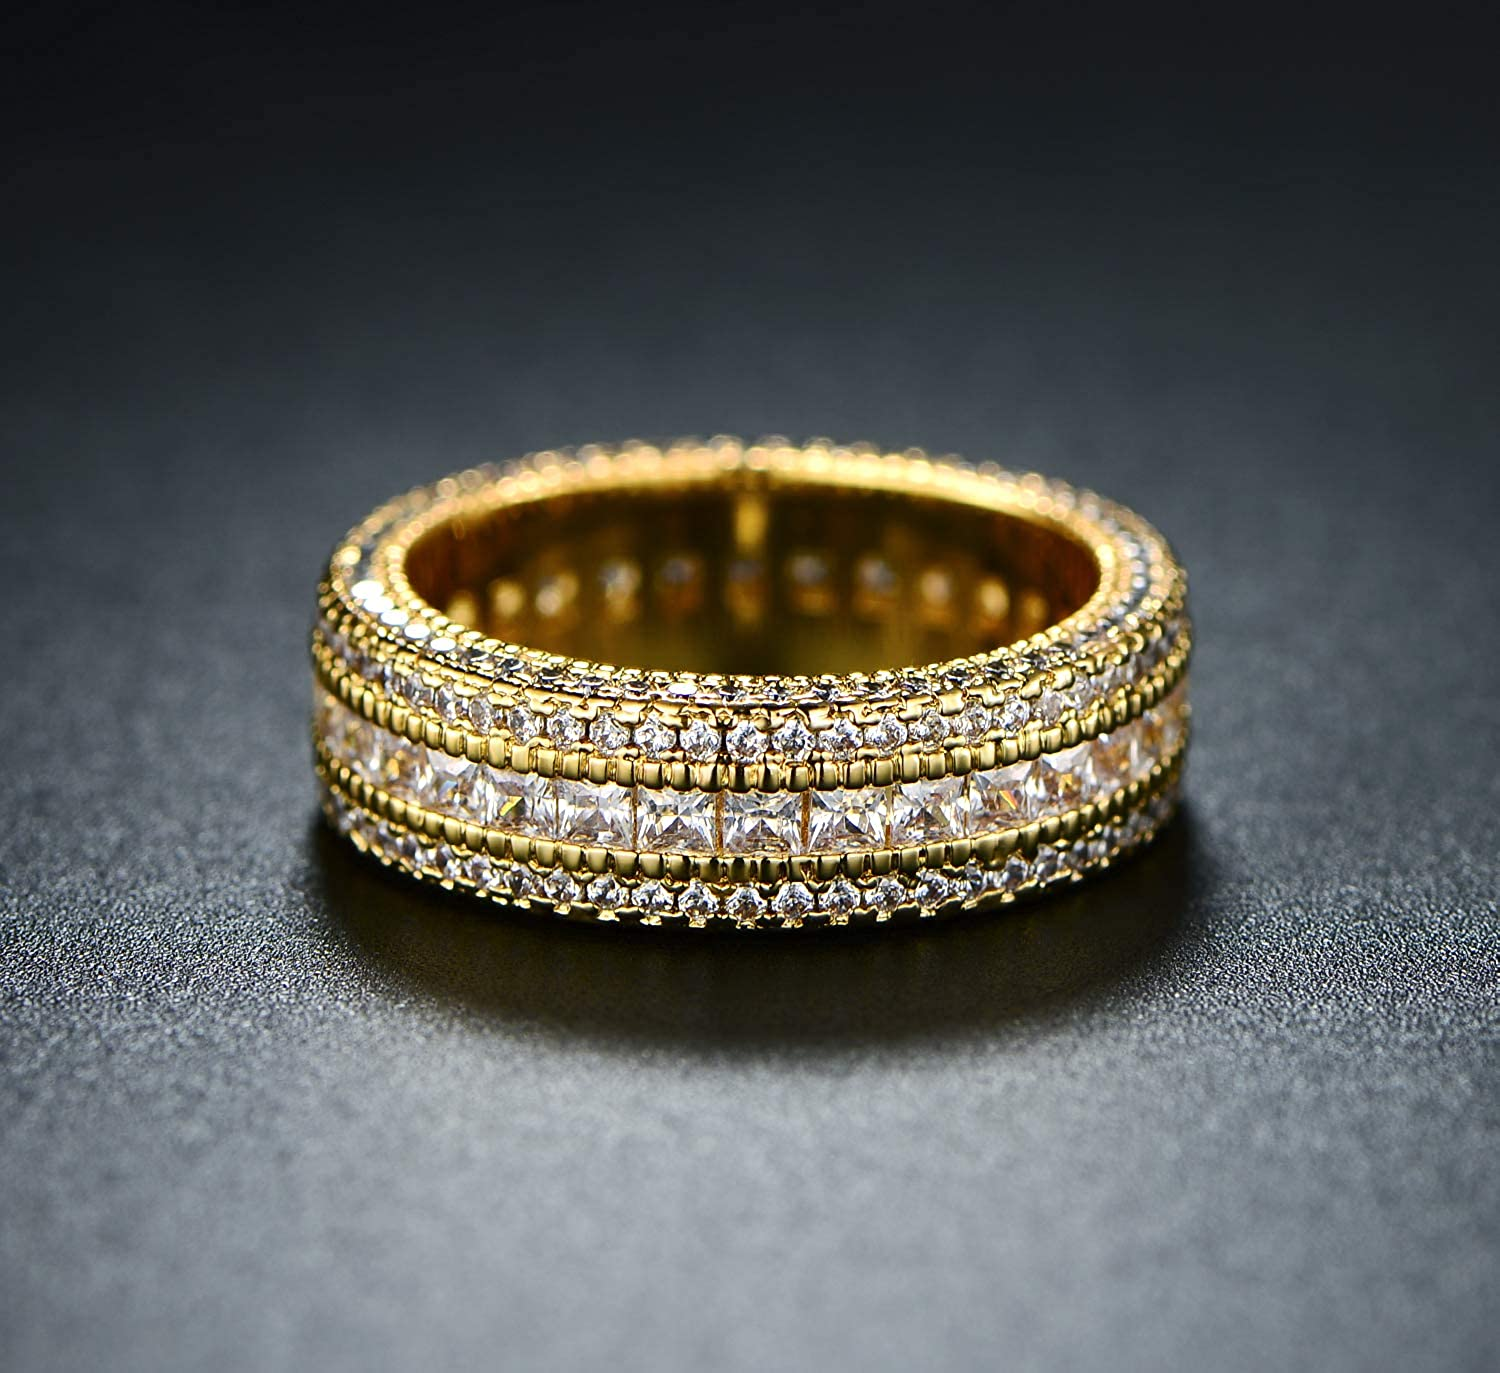 Rose Gold or White Gold Plated 5 Rows Cubic Zirconia Wide Band Statement Cocktail Eternity Band Ring Jewelry SGS INTERNATIONAL Barzel 18k Gold